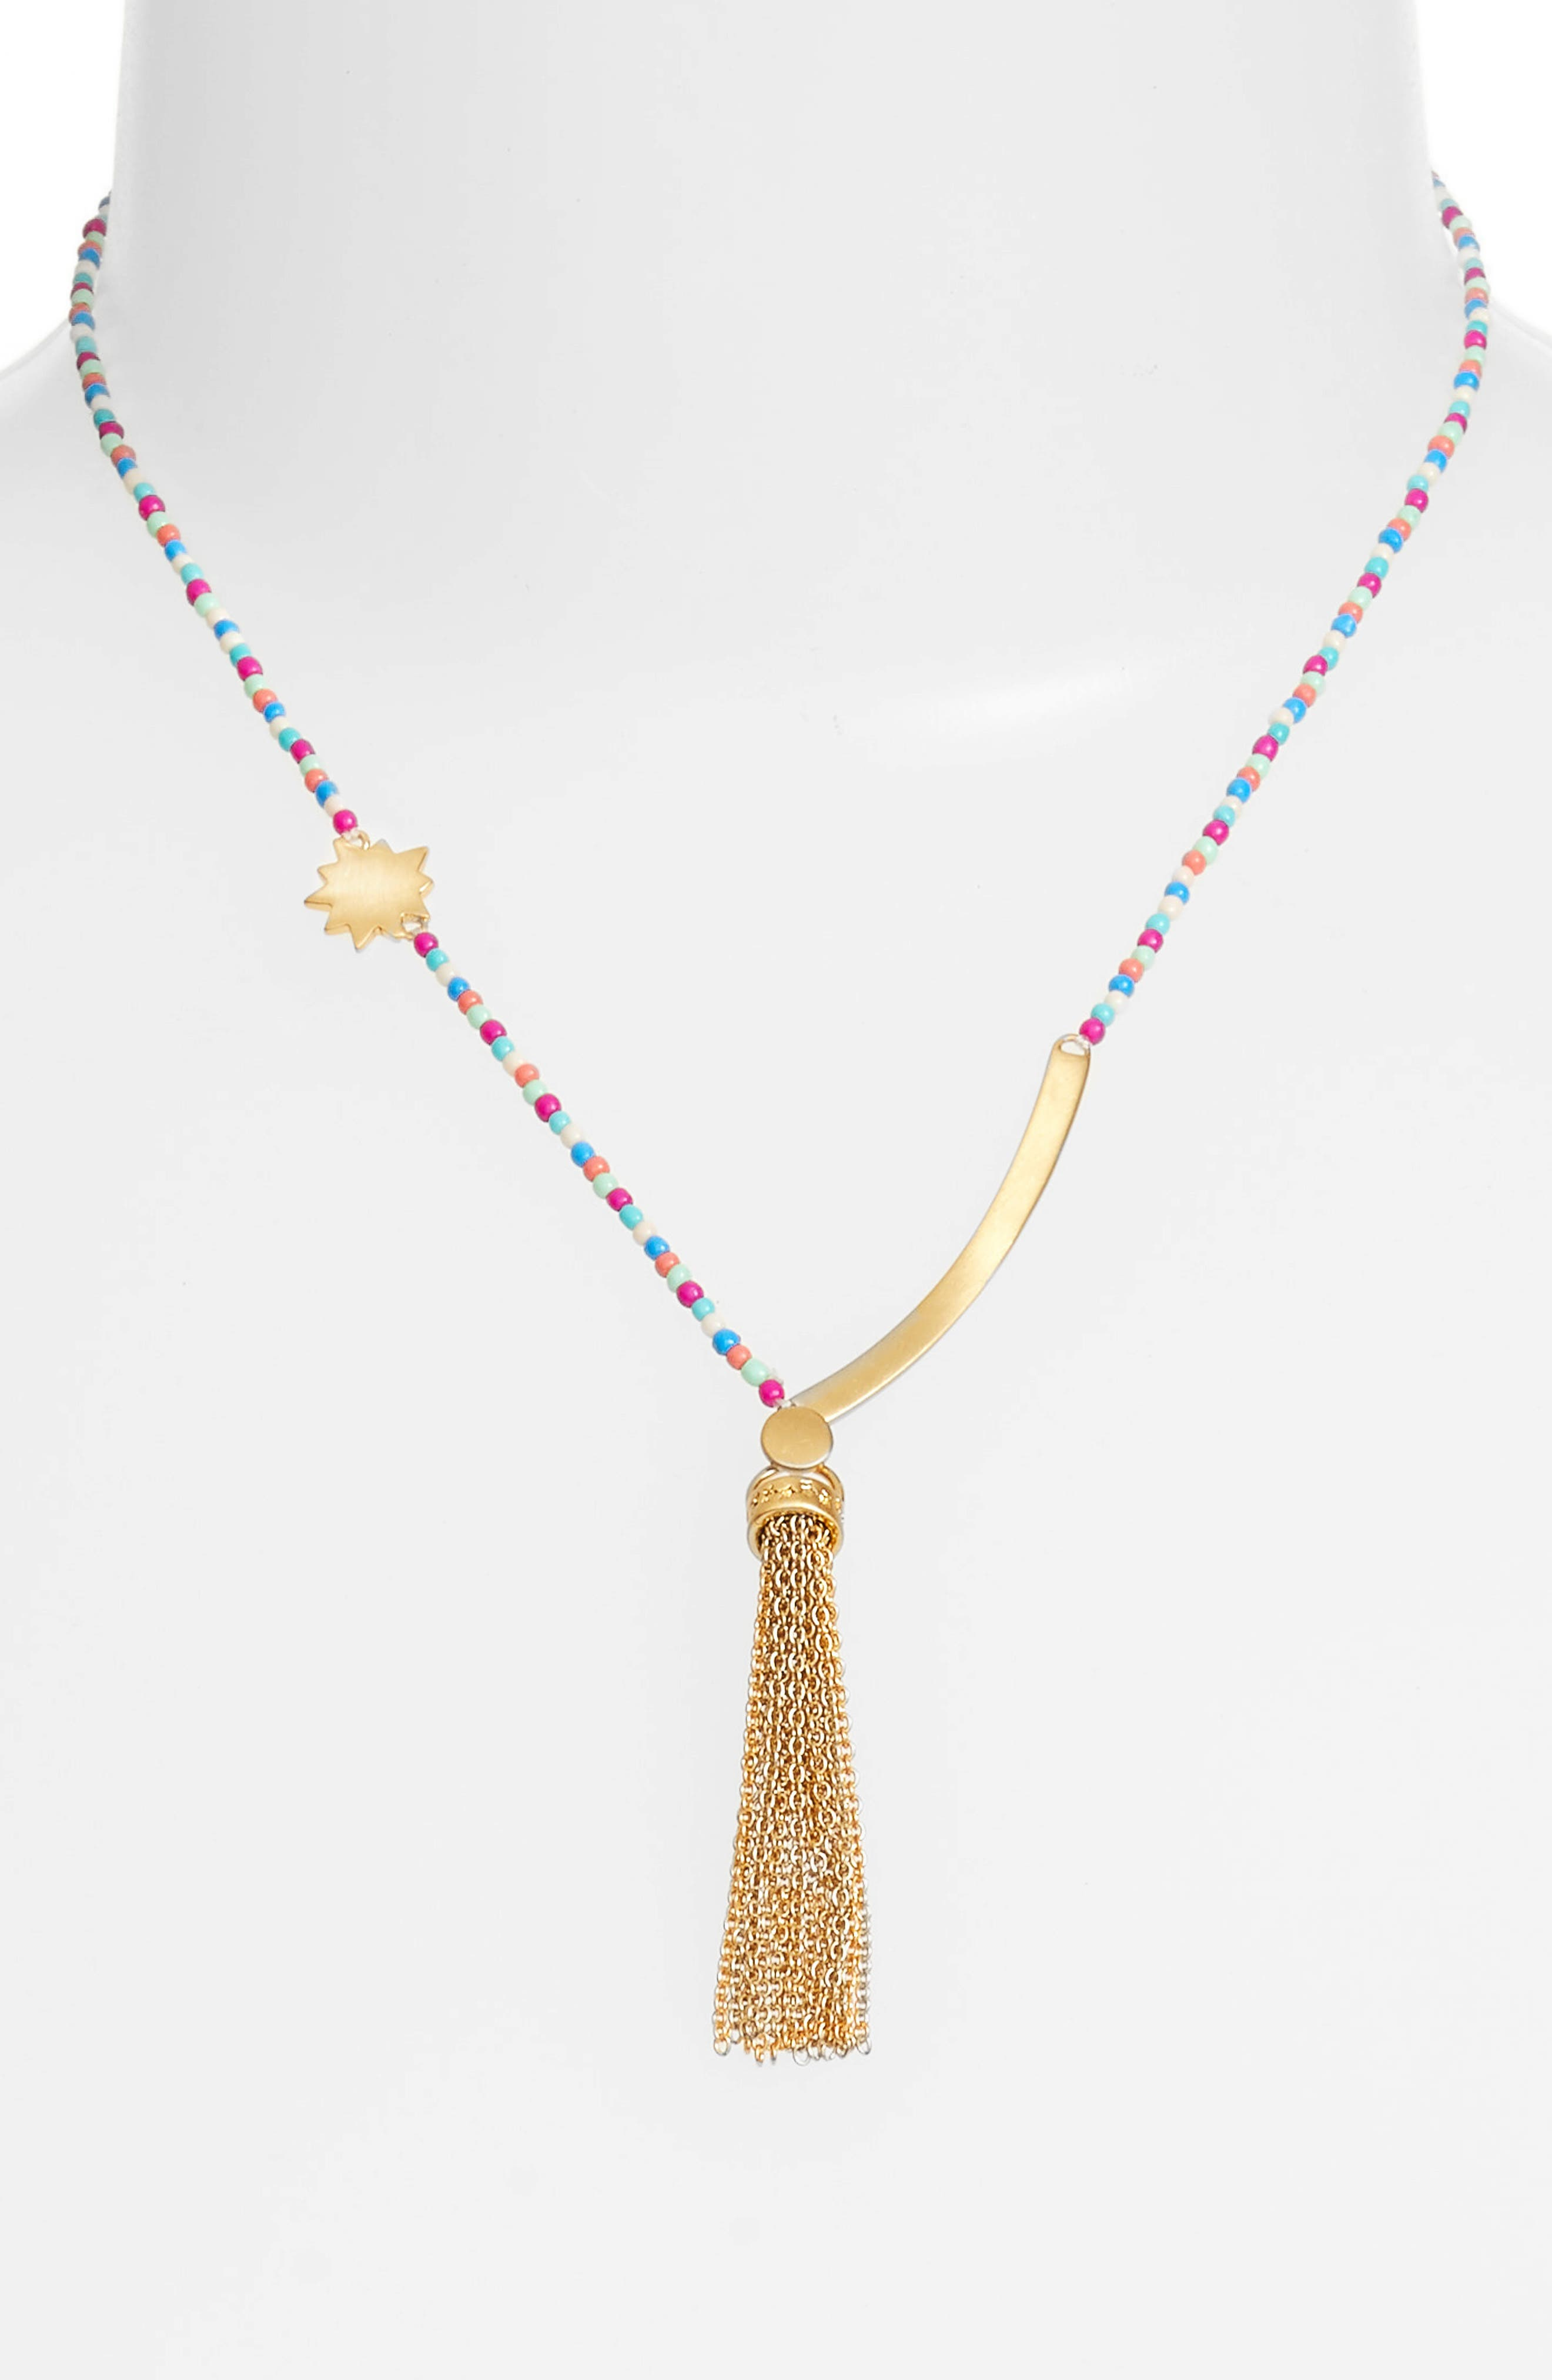 Sole Beaded Tassel Necklace,                             Alternate thumbnail 2, color,                             Bright Multi/ Gold